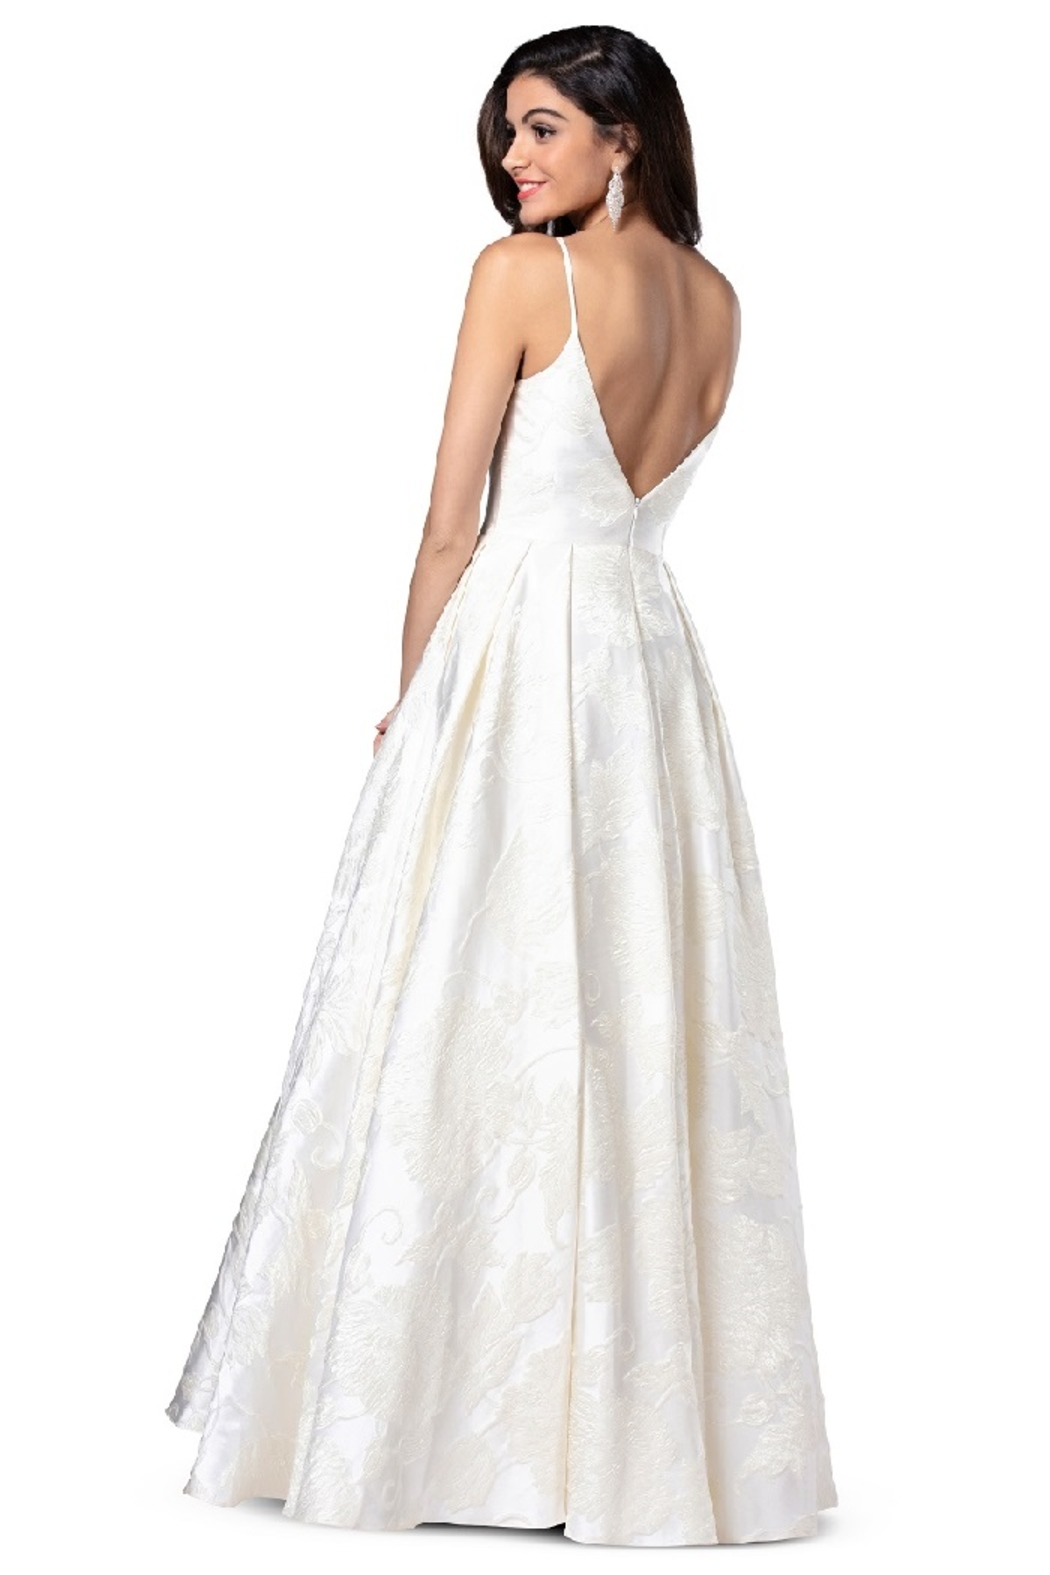 Flair New York Cream Floral Print Bridal Ballgown - Side Cropped Image